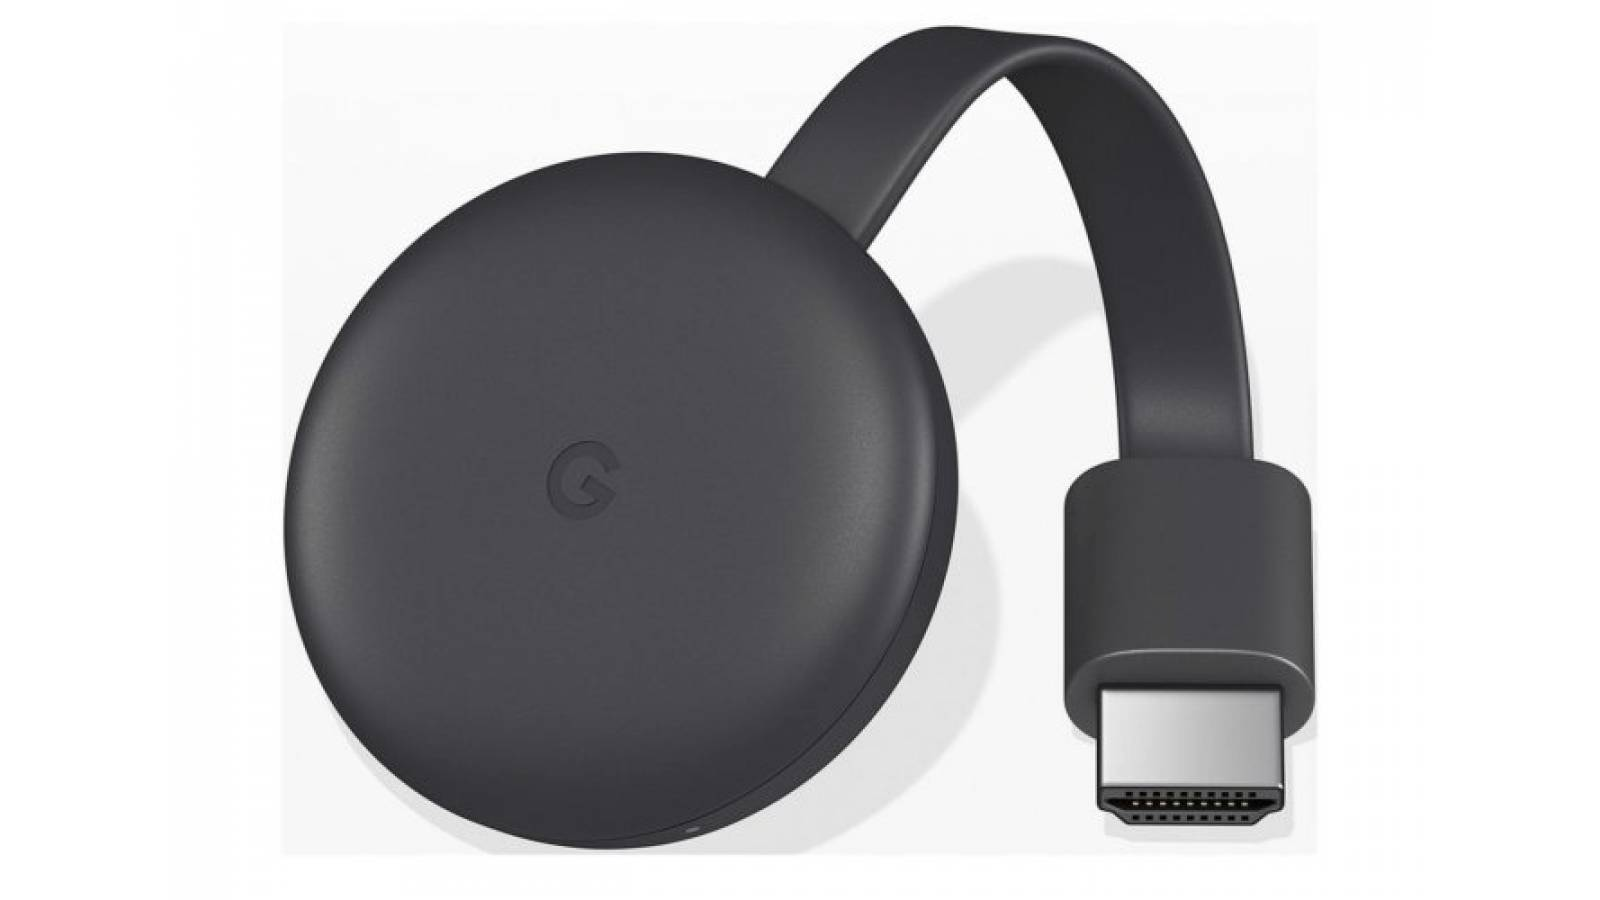 Google Chromecast 3 Generacion HDMI streaming media player